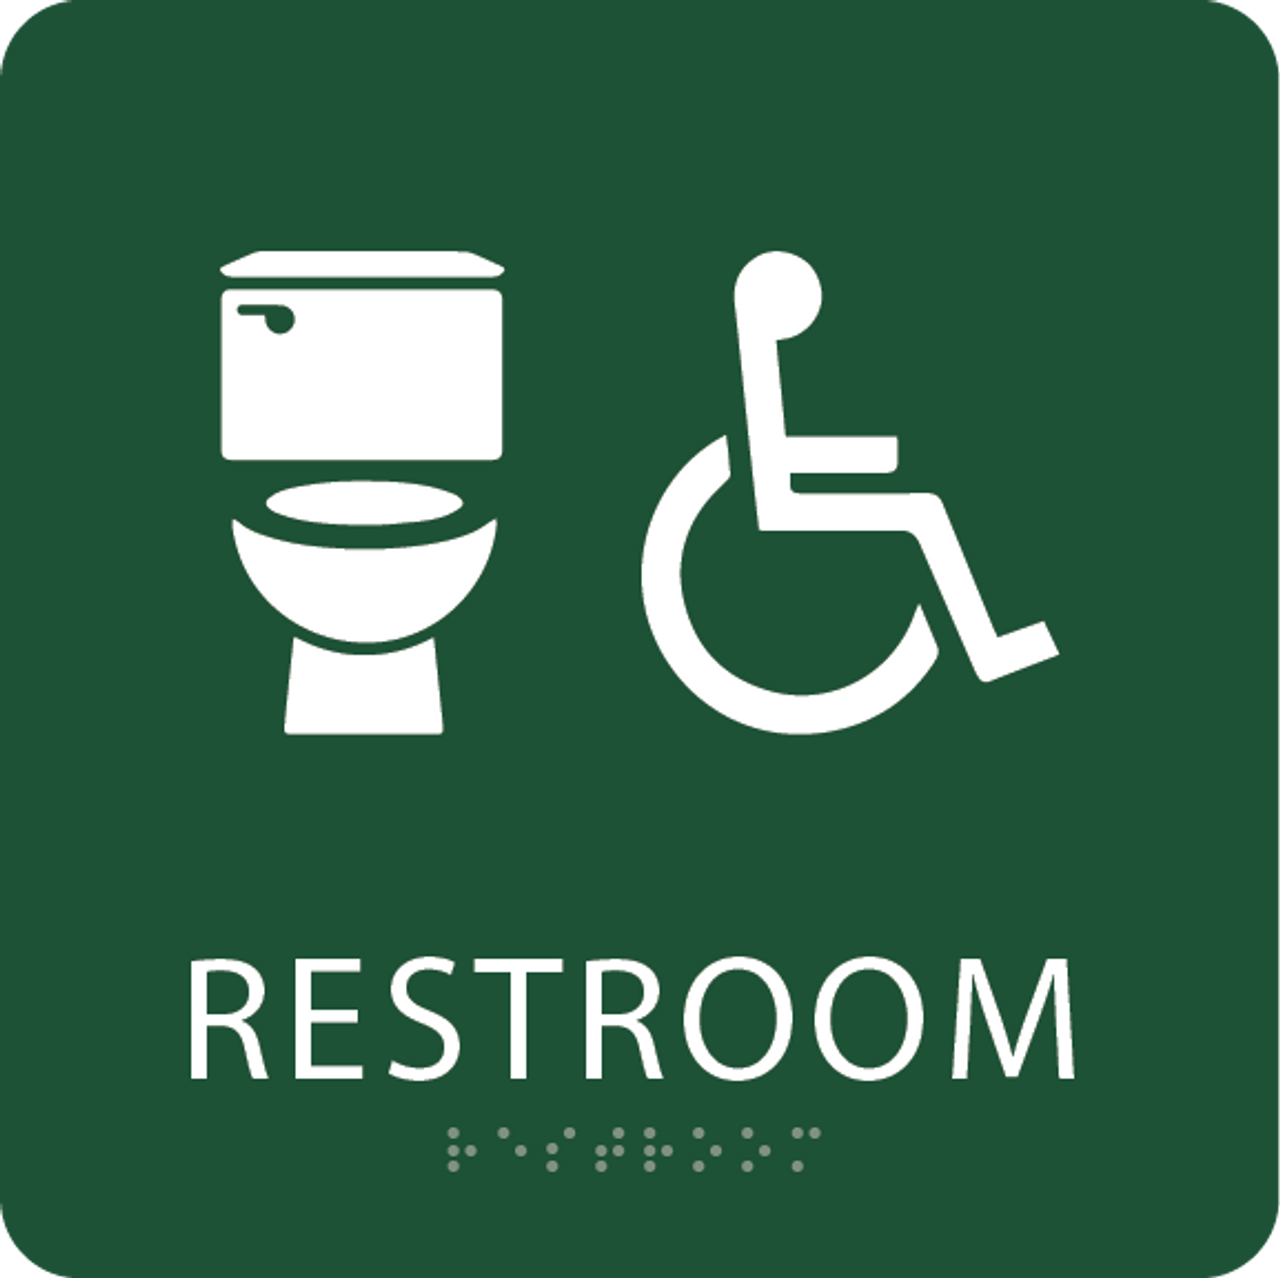 Green Accessible Toilet Sign